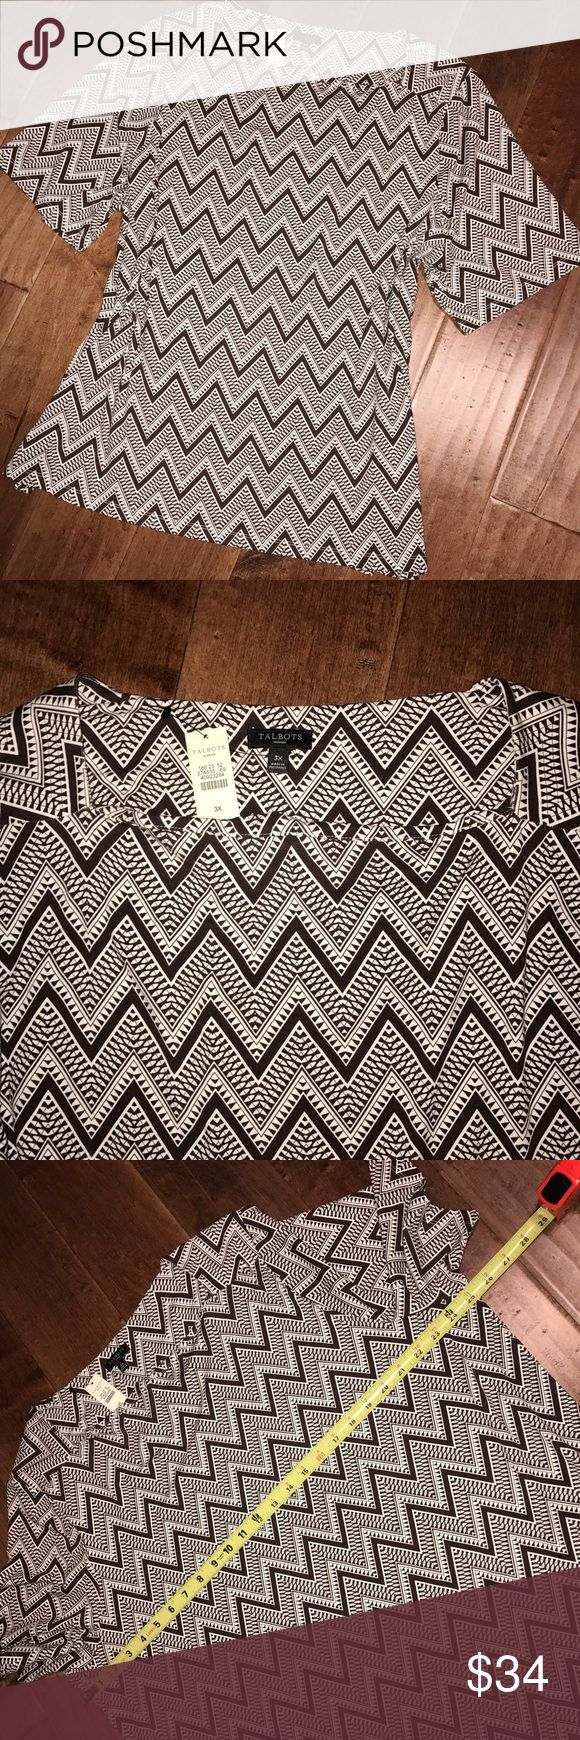 NWT 🆕 Talbots Chevron Blouse New with tags Talbots chevron blouse. Talbots Tops Tunics